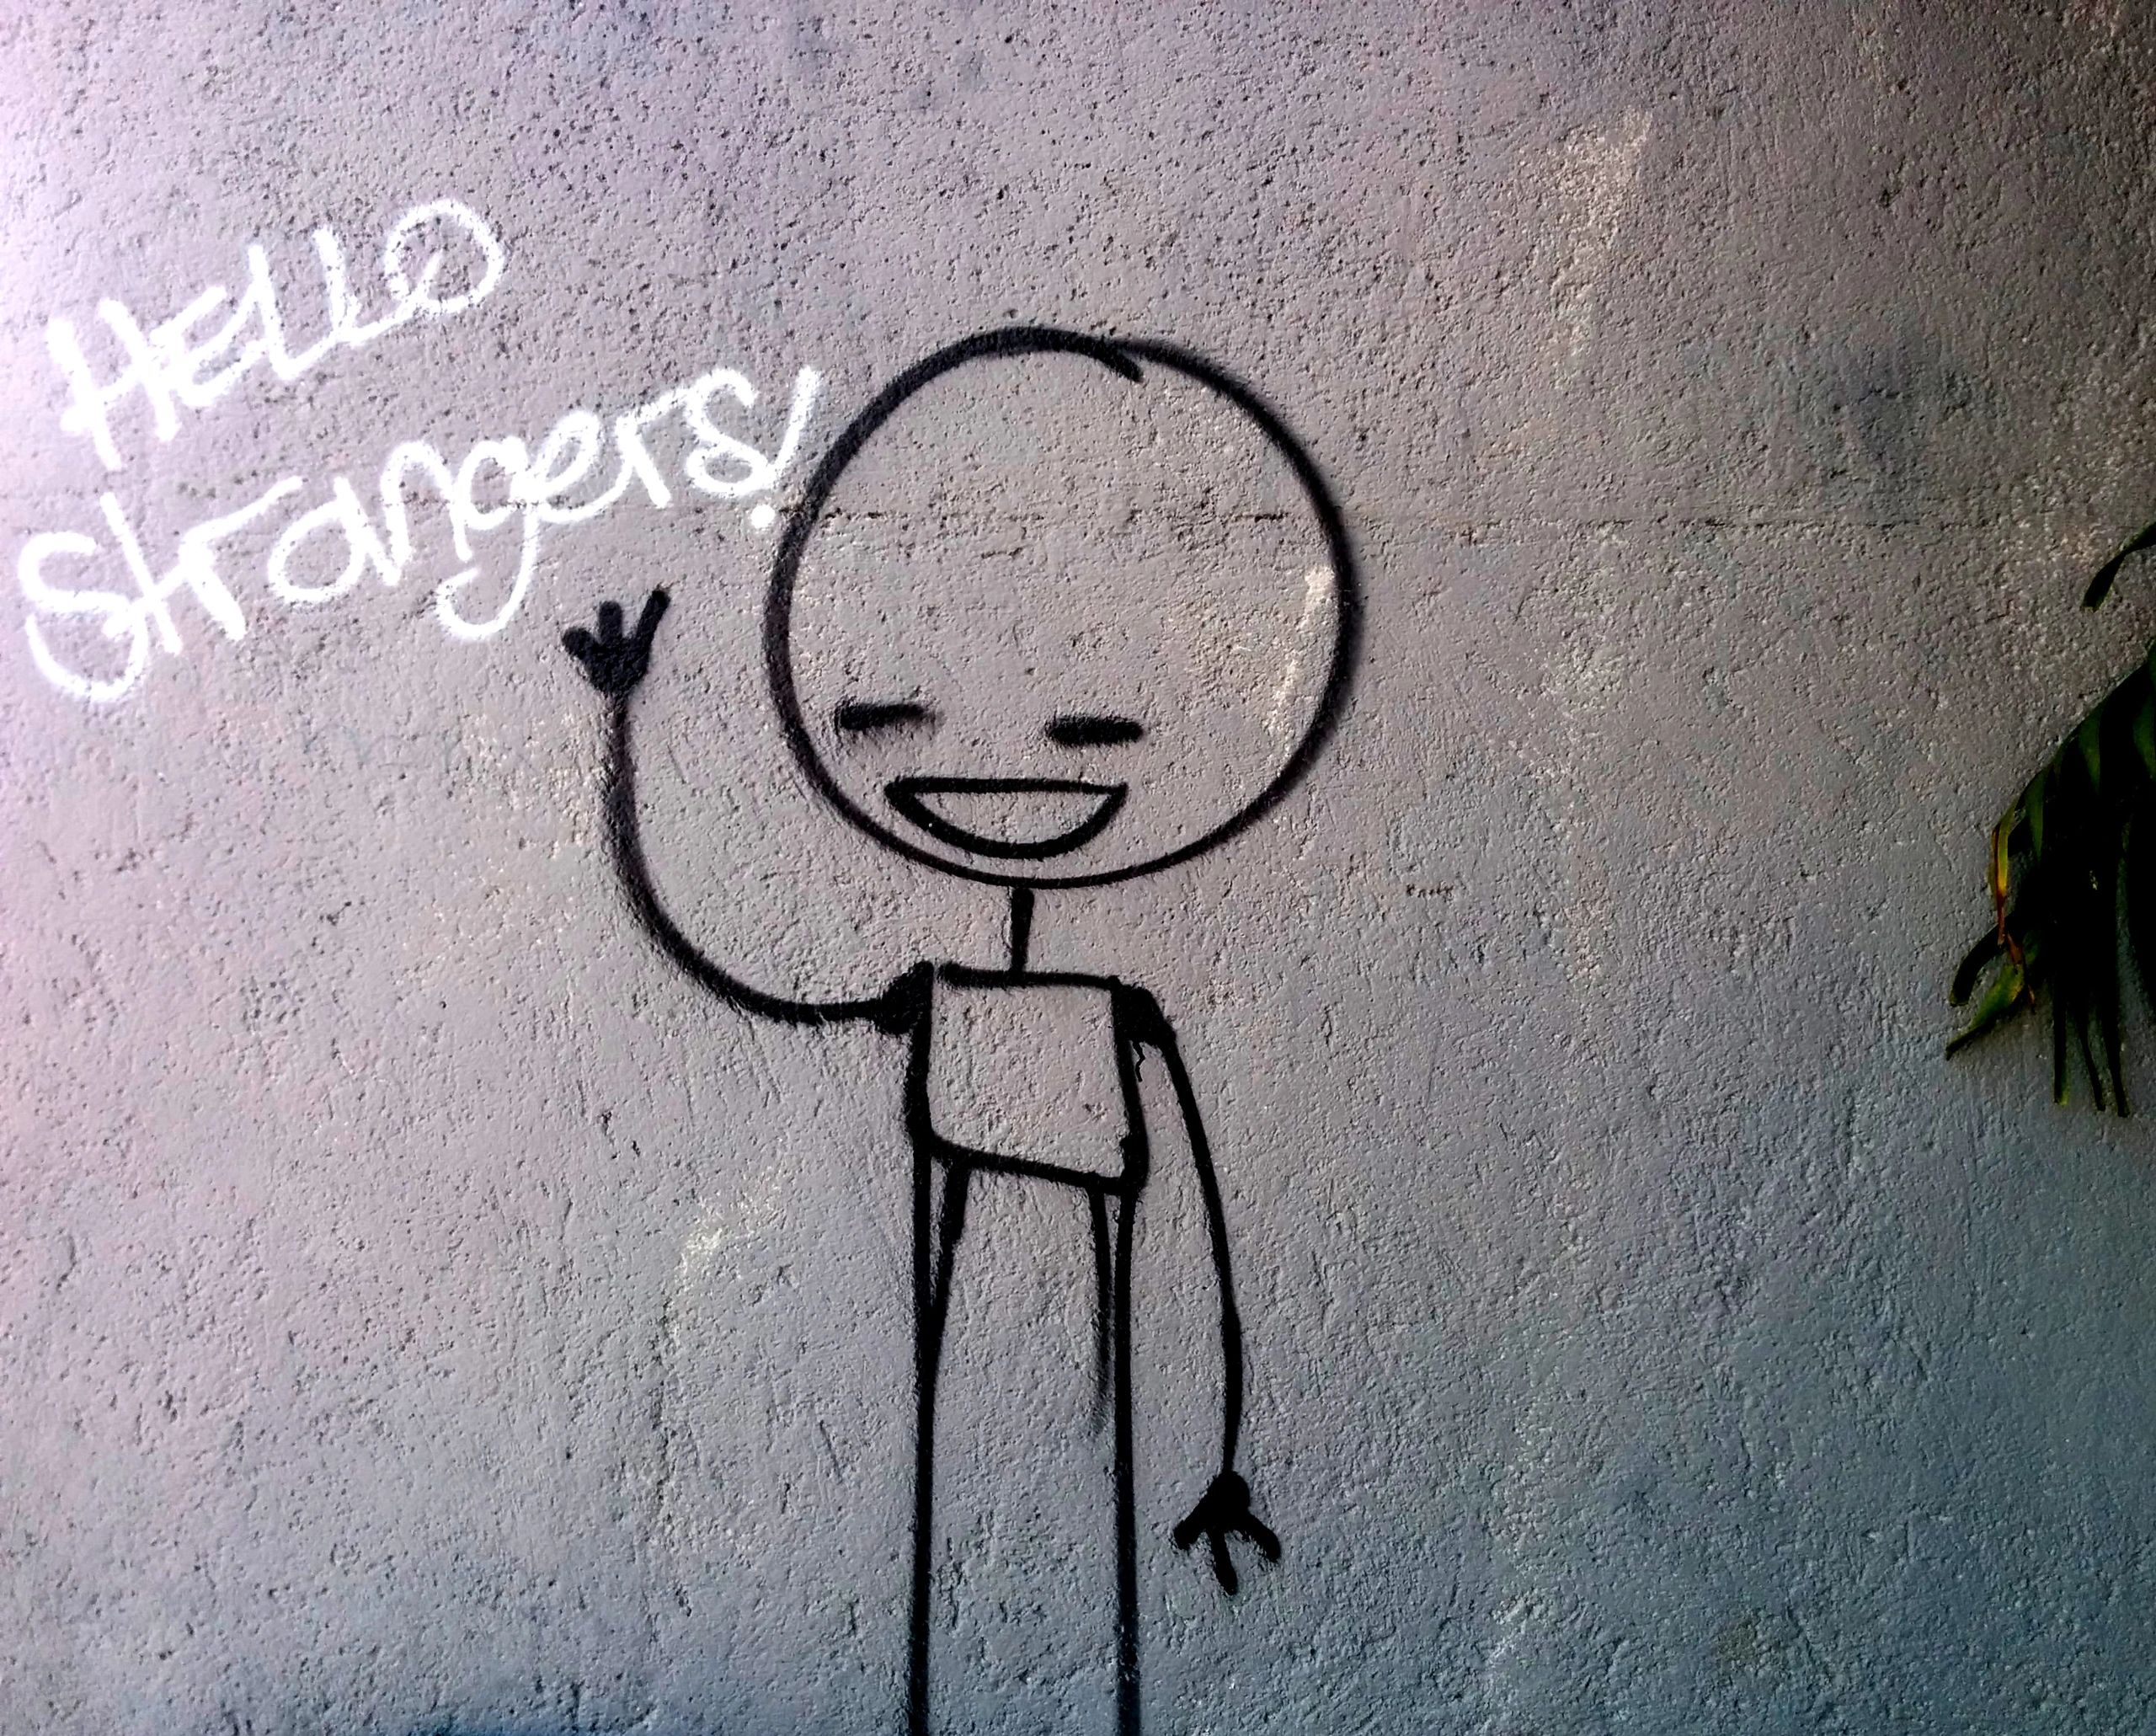 Graffiti of stick man waving and text saying 'Hello strangers!'